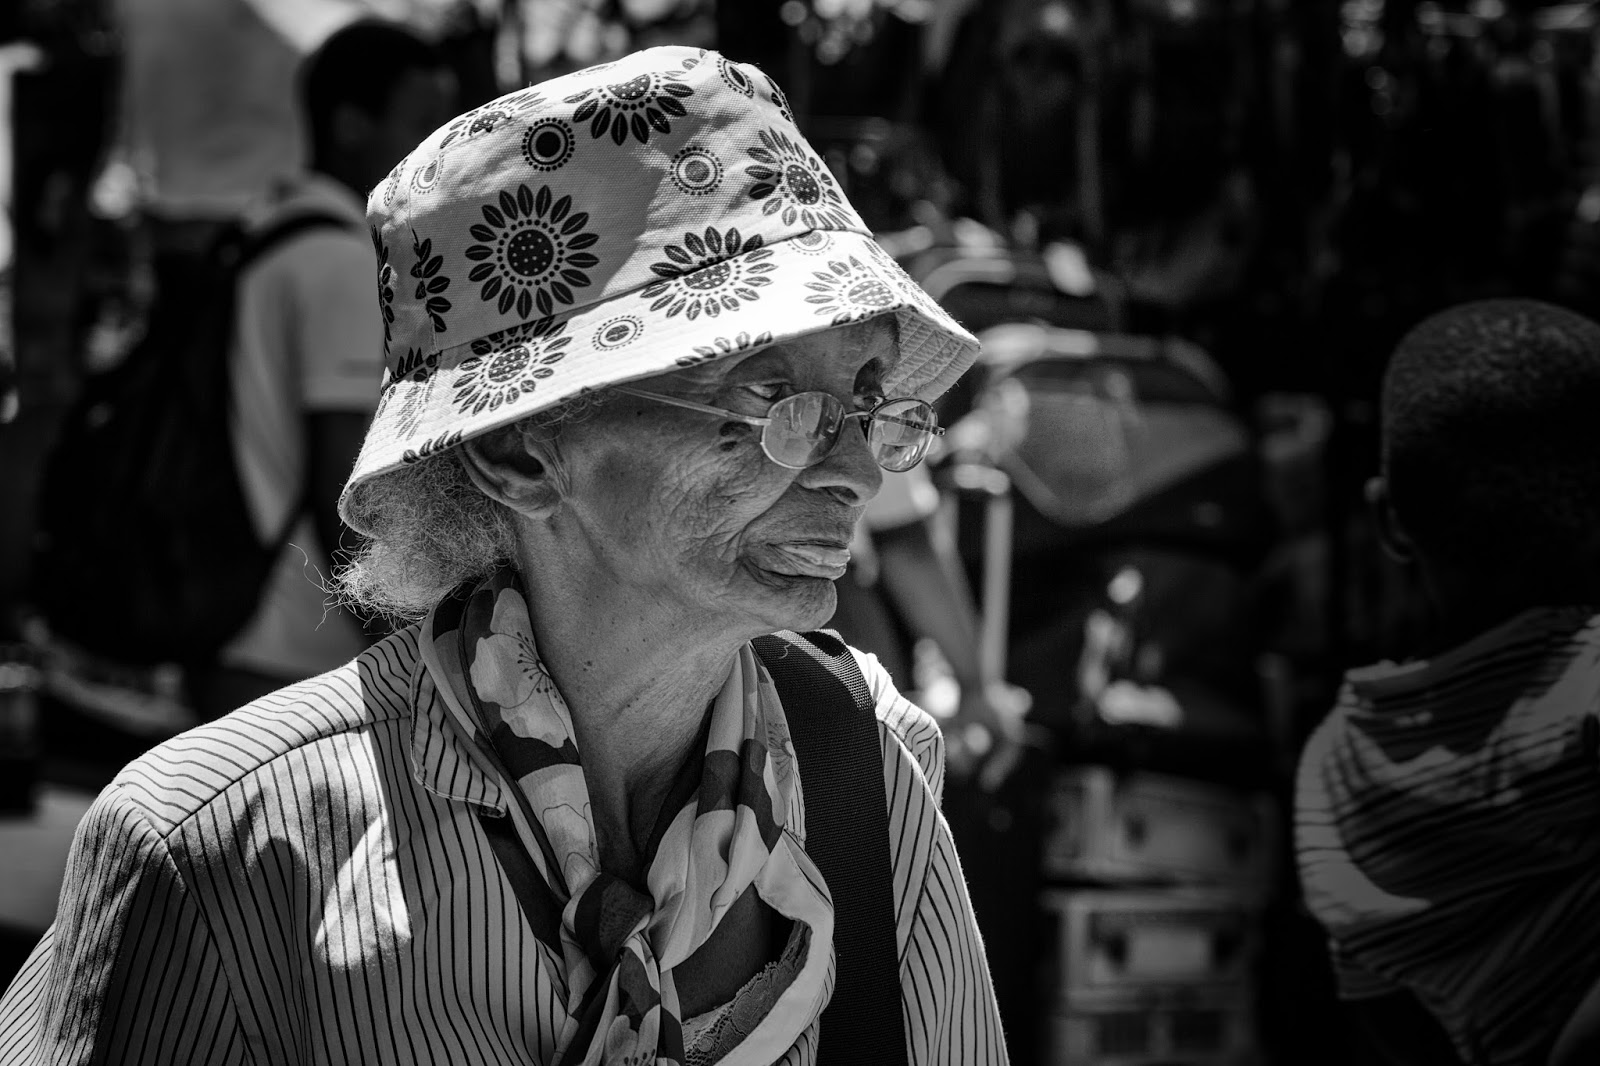 A woman in a sun hat